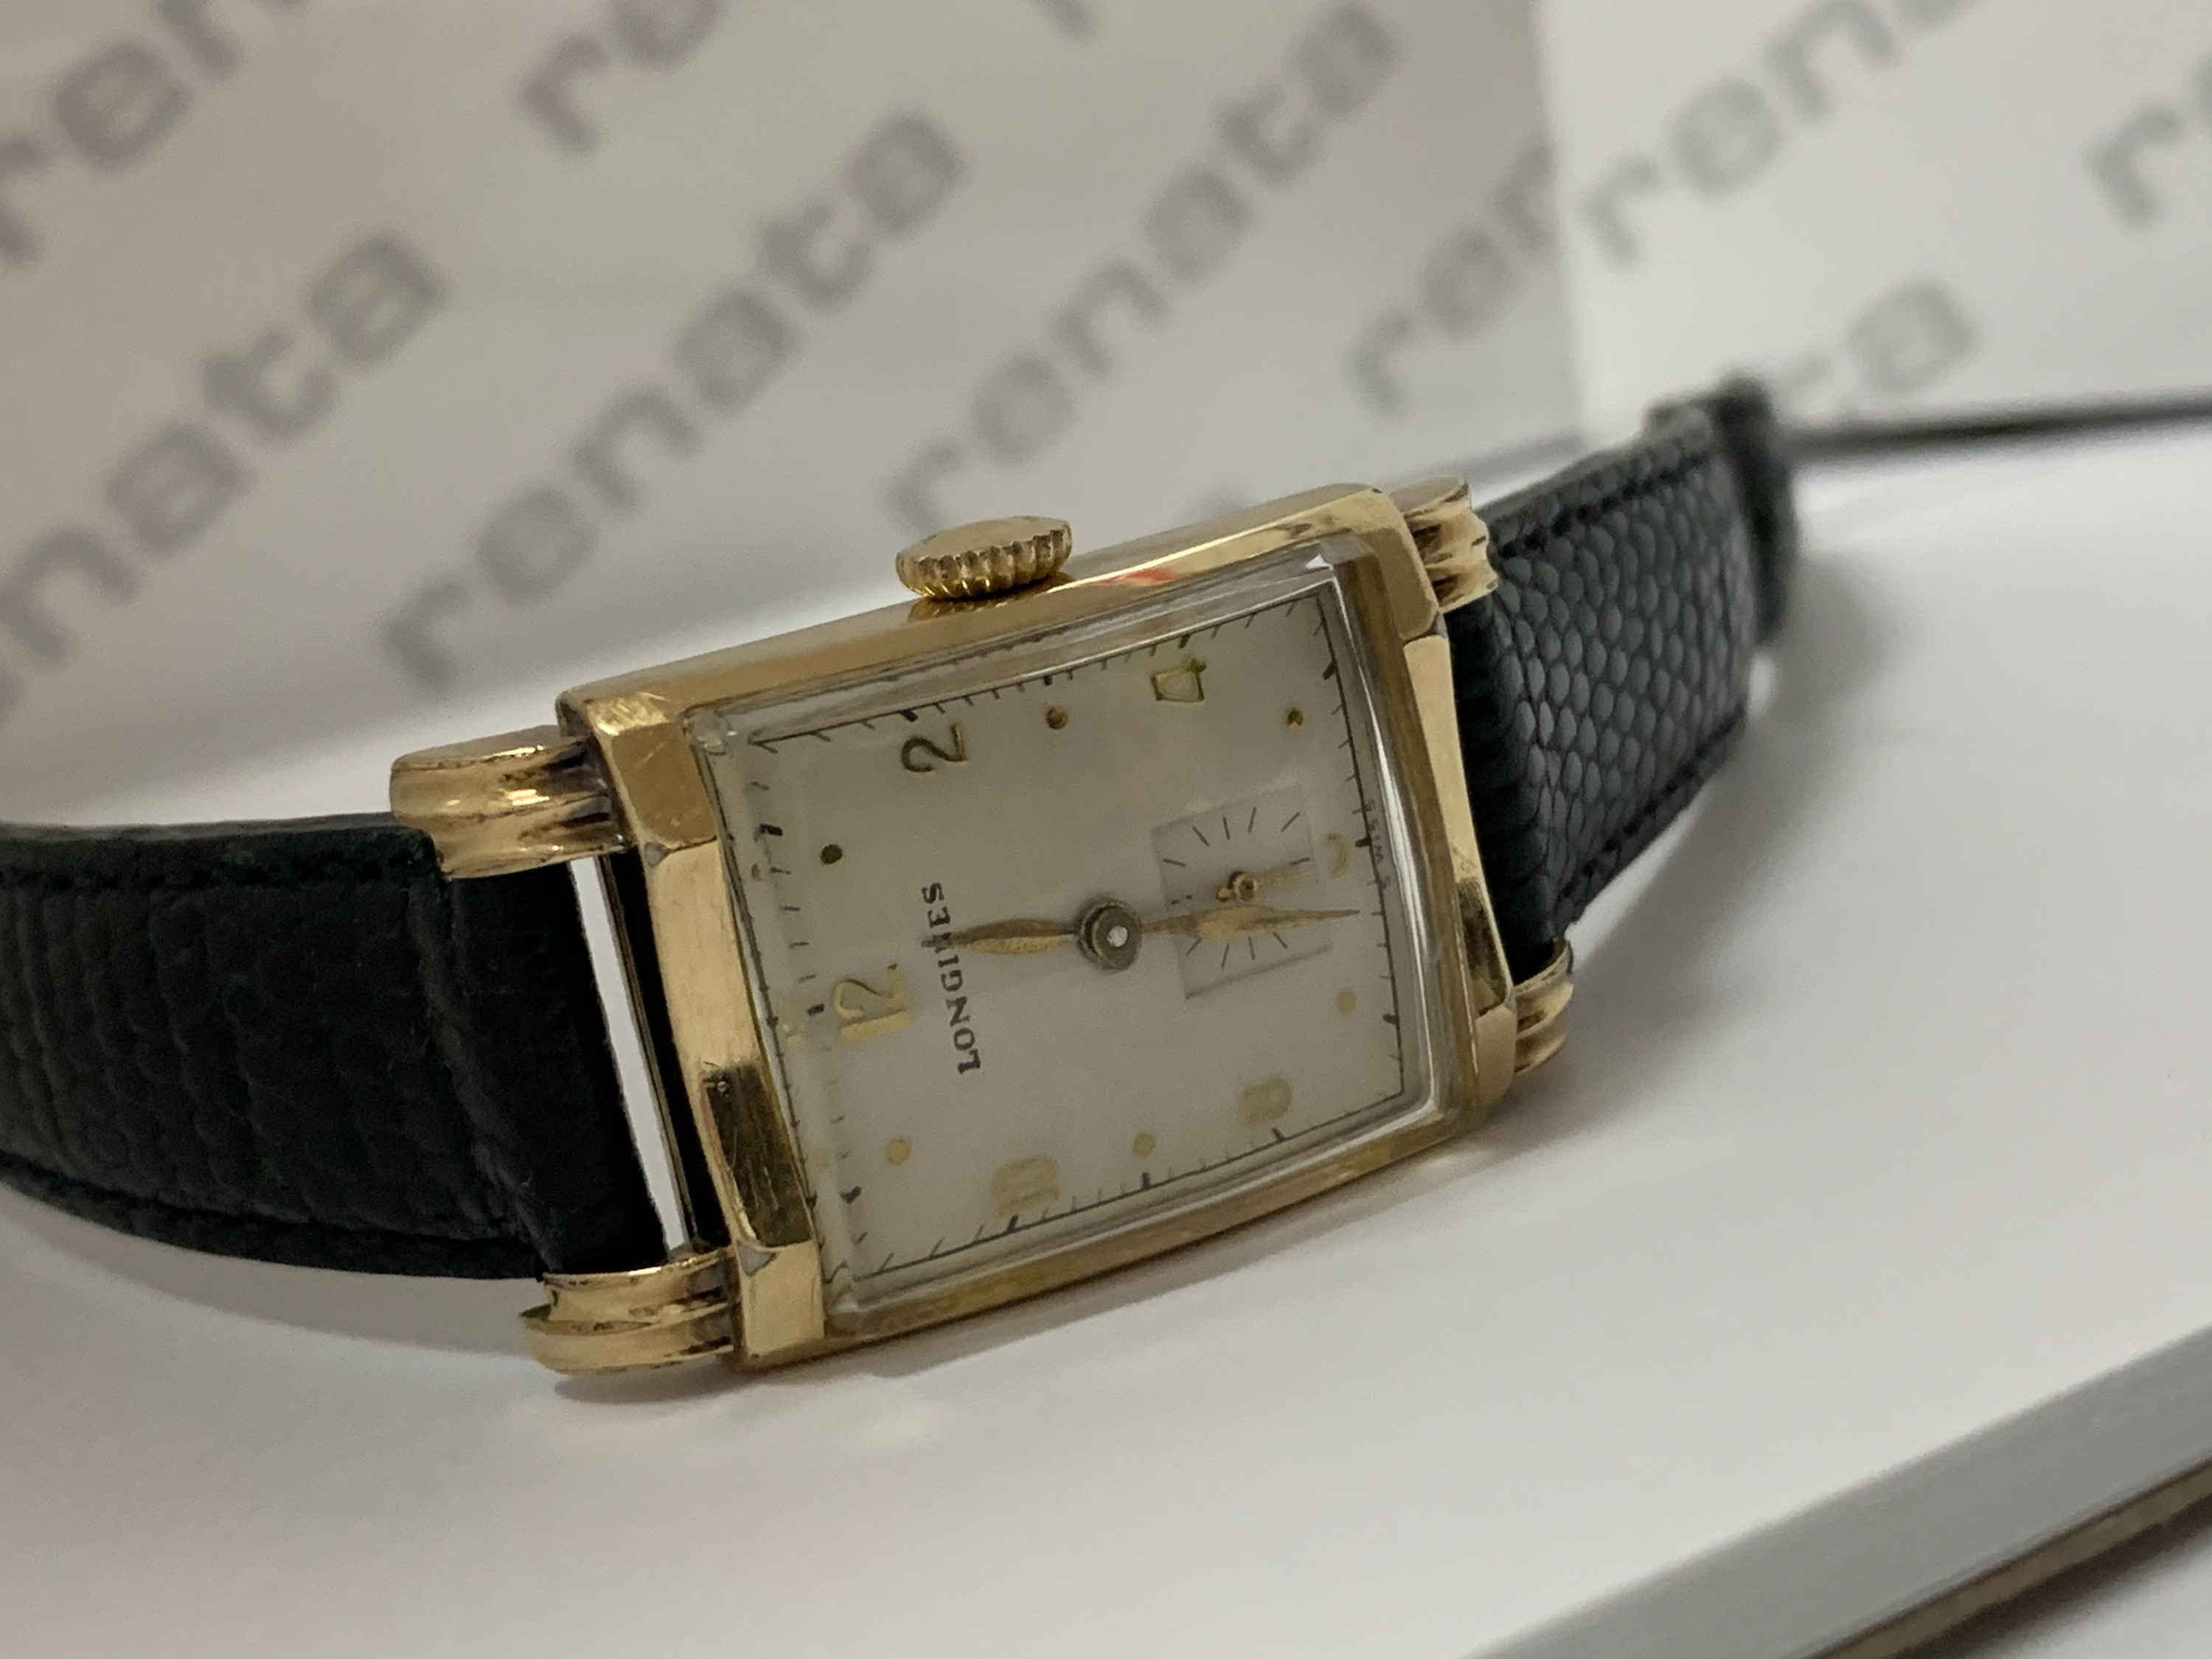 Men's 1940 Longines watch fully serviced and cleaned